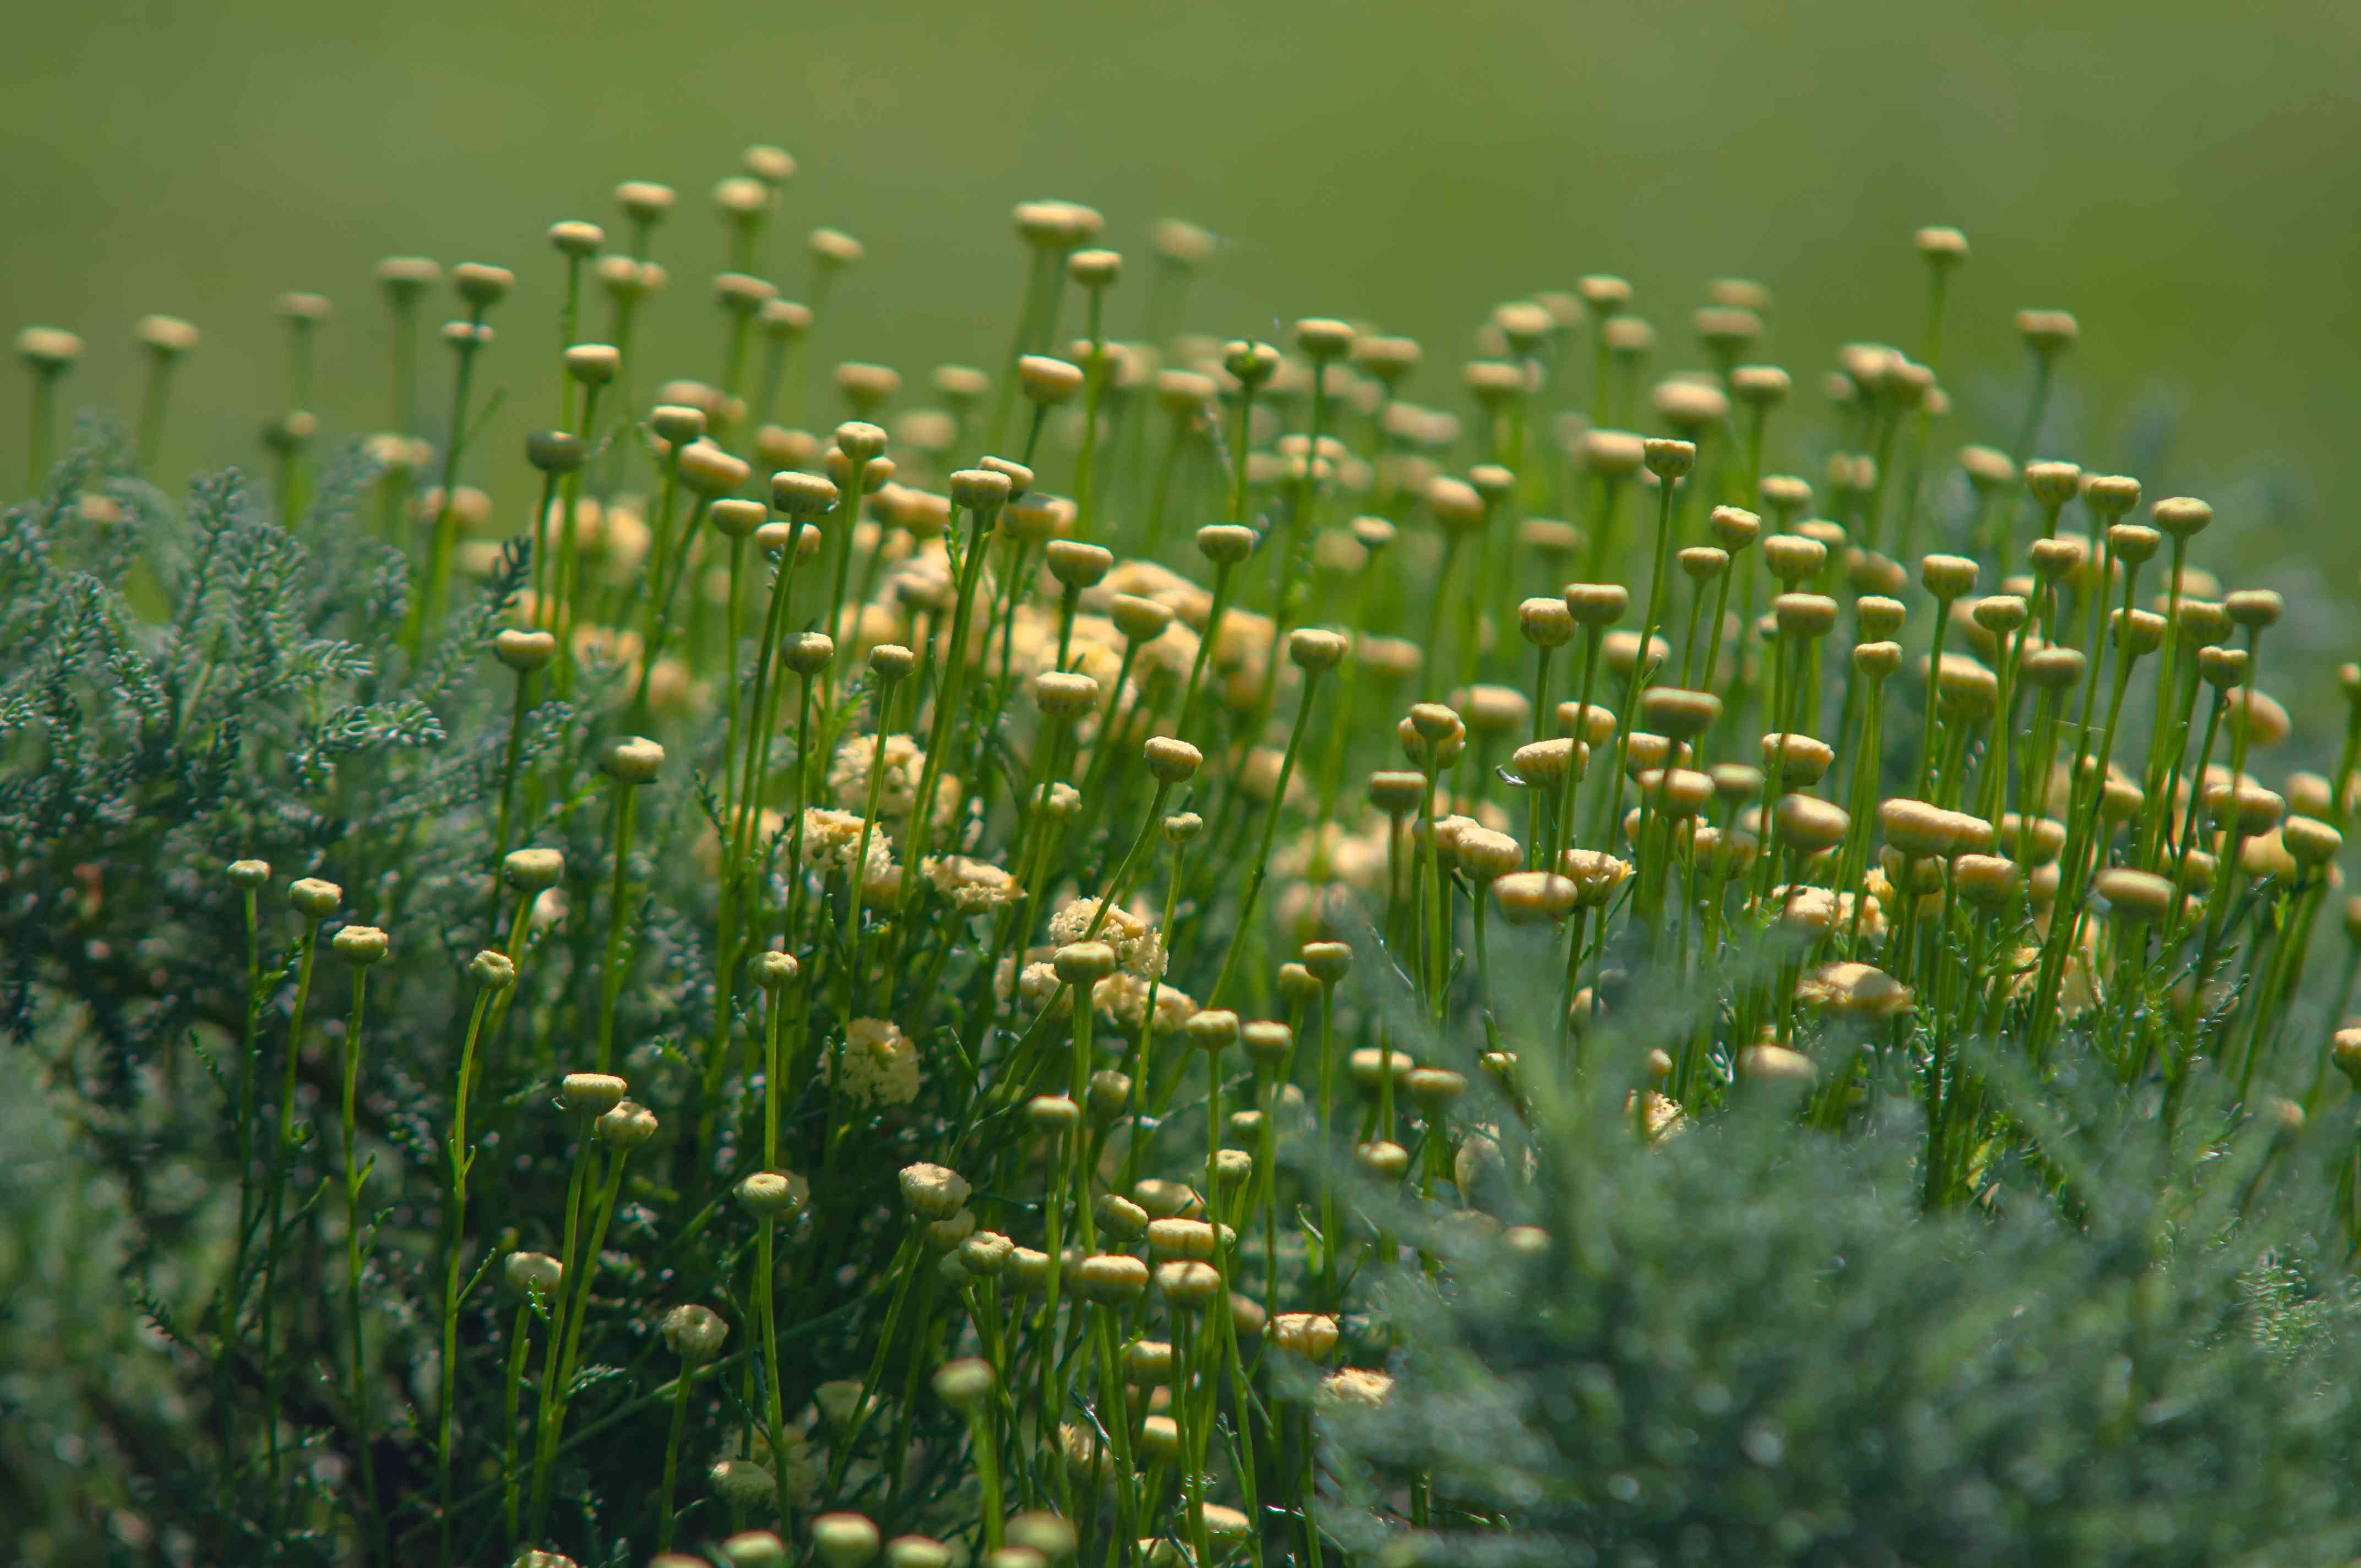 Lavender cotton plant with small yellow flowers on thin wiry stems in garden